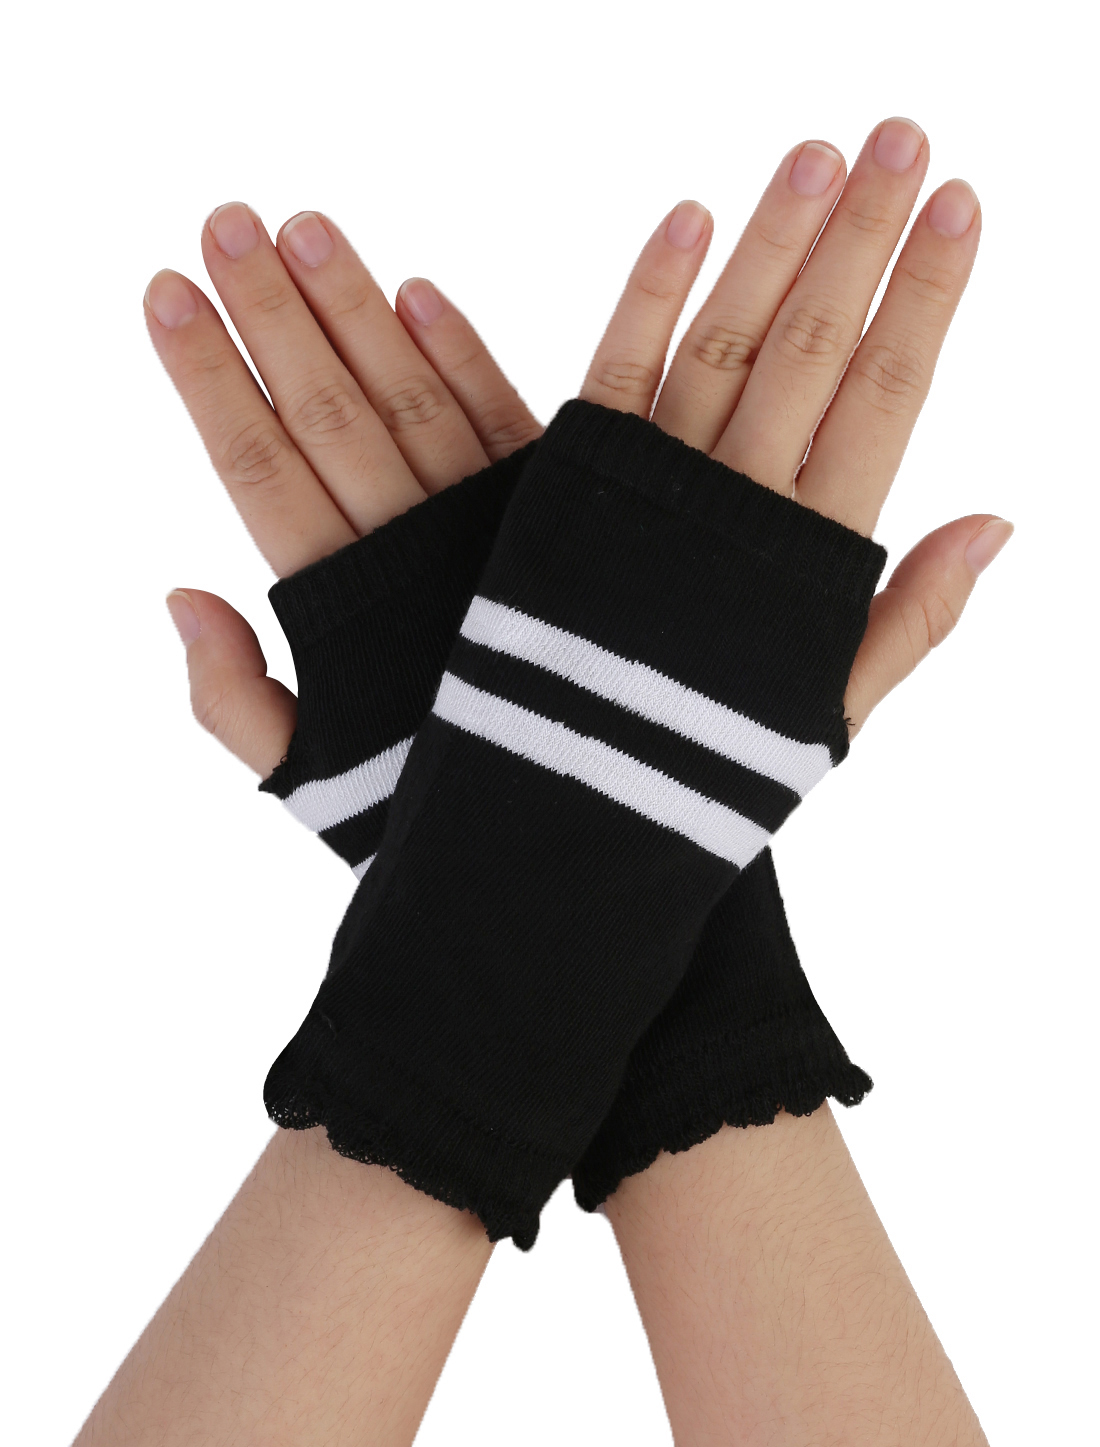 Lady Stretchy Cuff Black White Striped Fingerless Knitted Gloves Pair